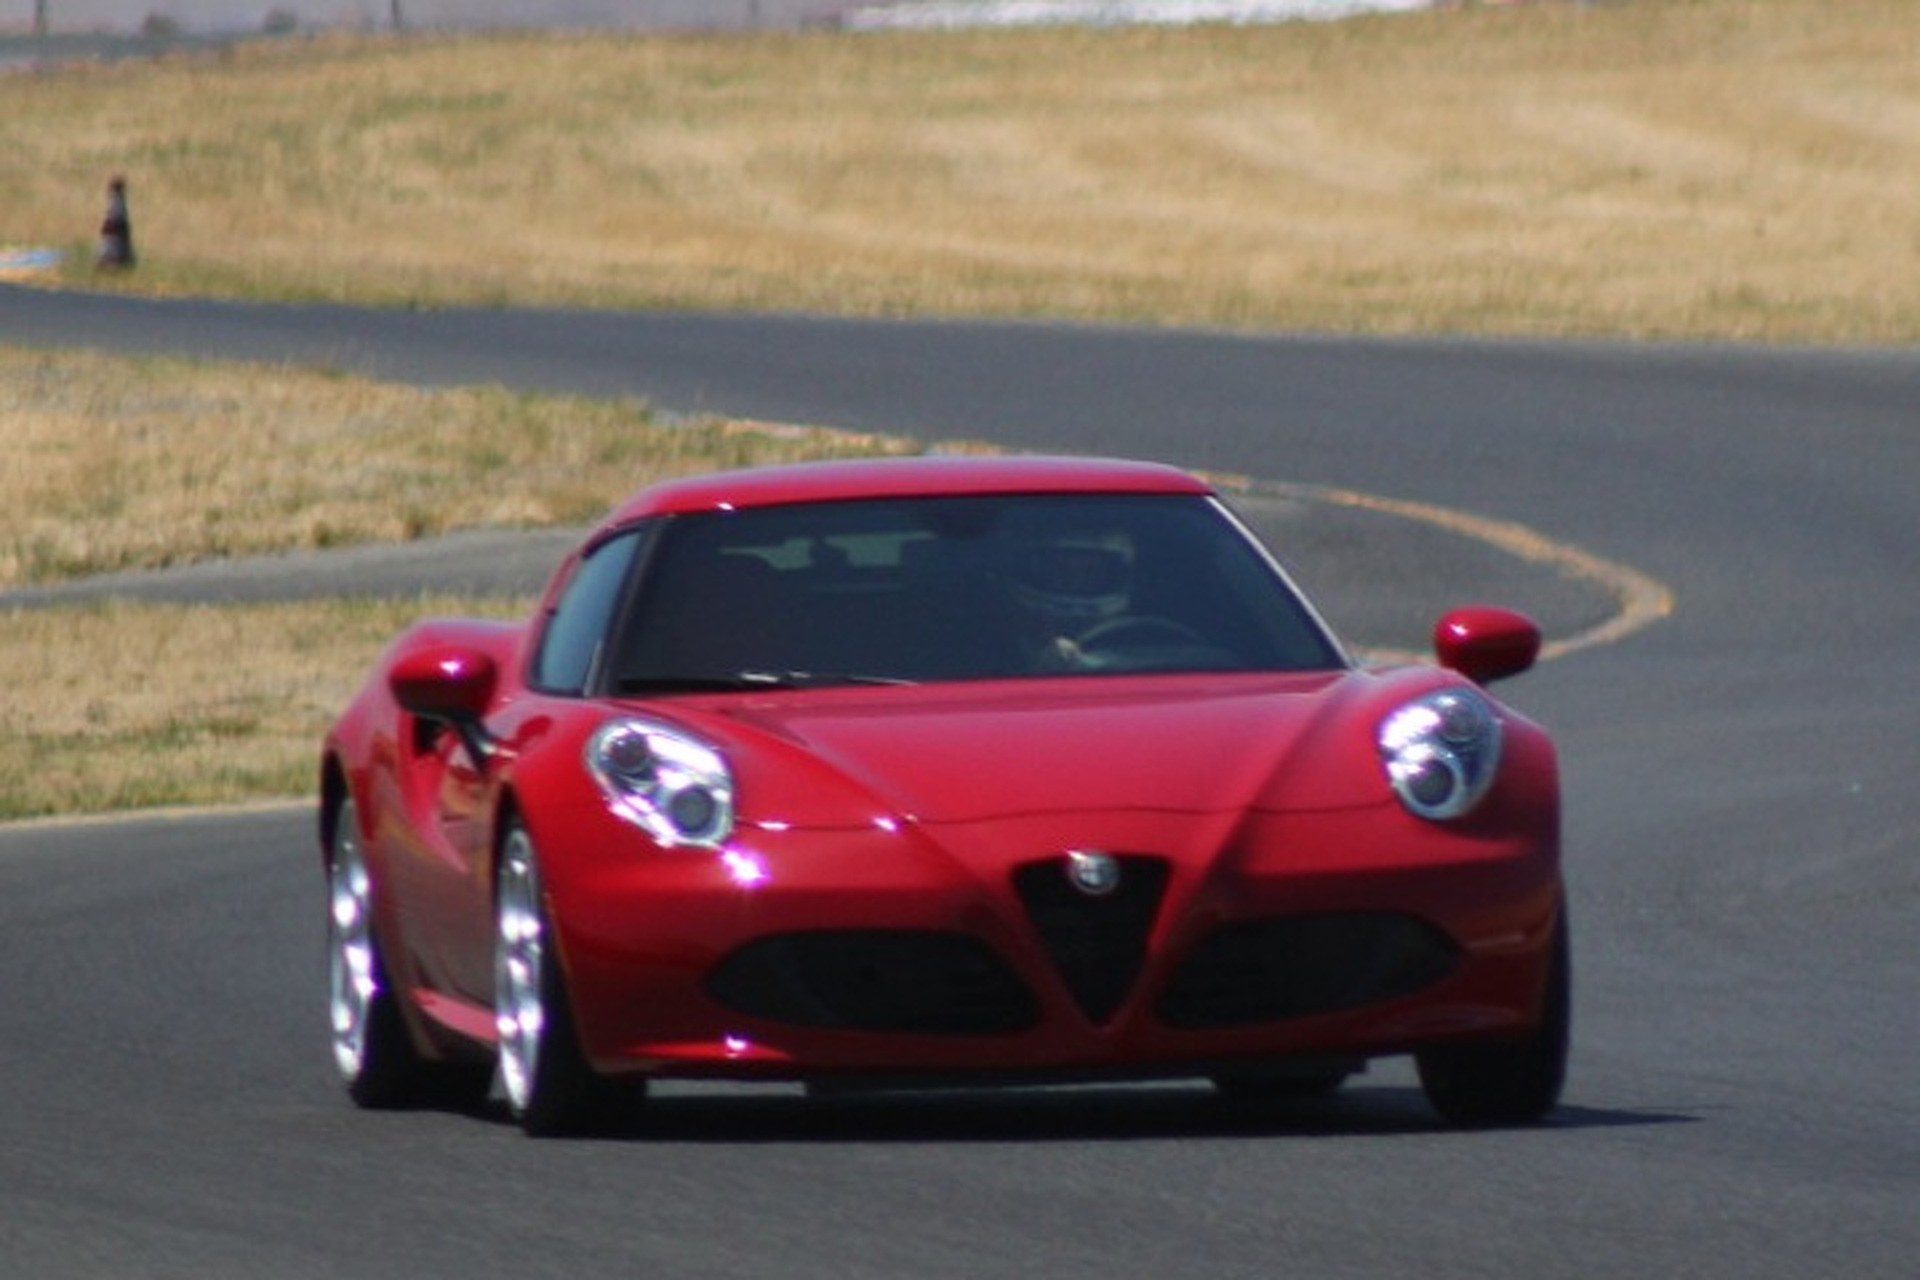 Alfa Romeo 4C Review: Minimalist Performance at its Finest